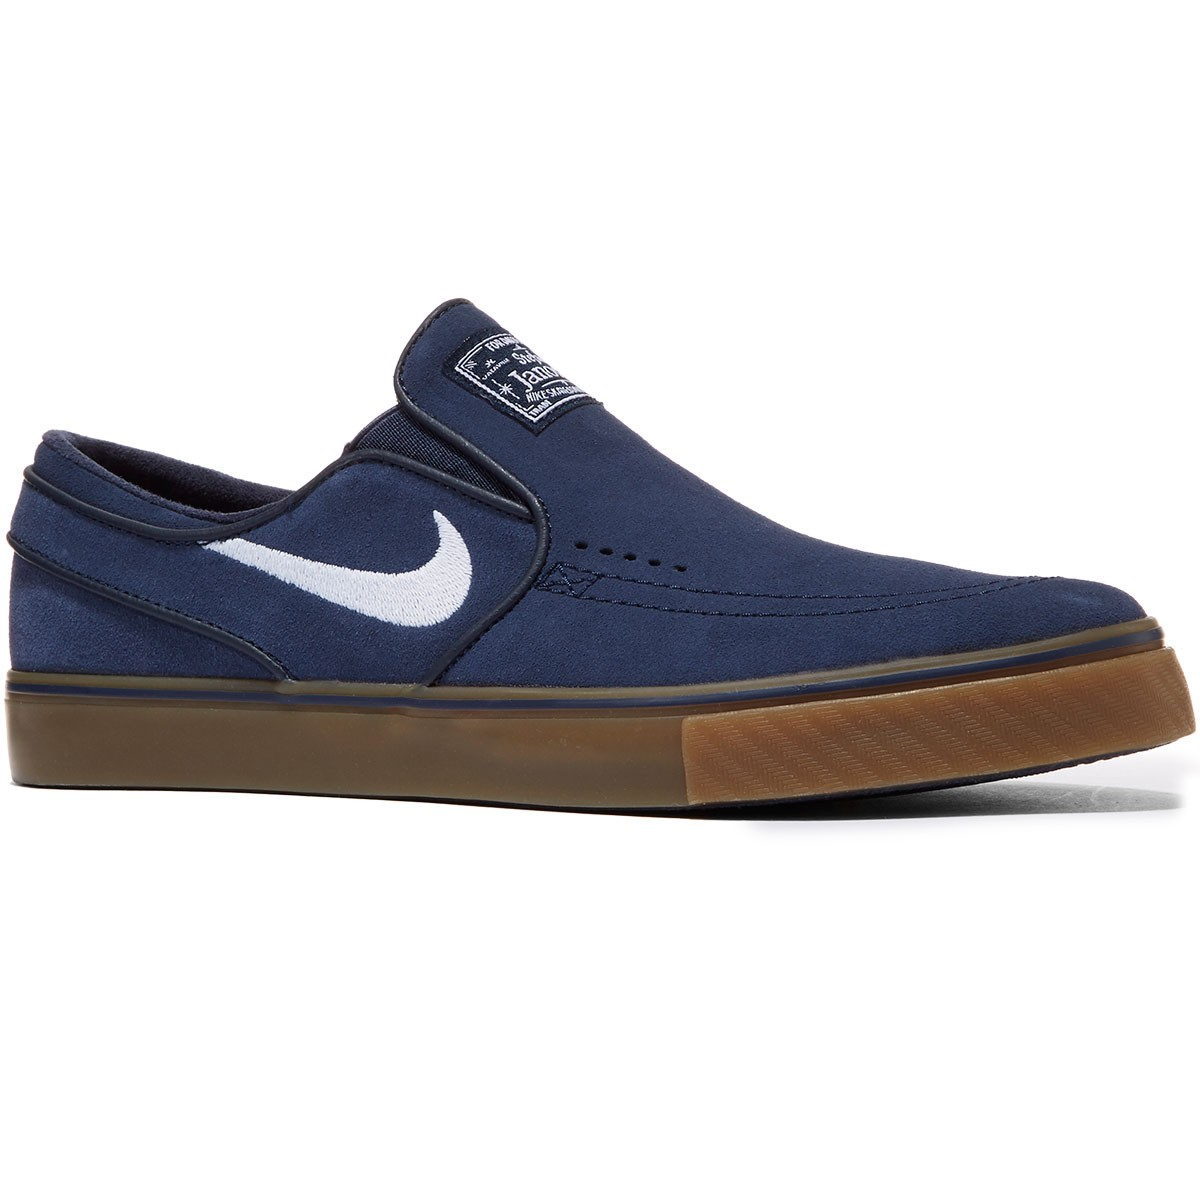 Nike Zoom Stefan Janoski Slip On Canvas Shoes